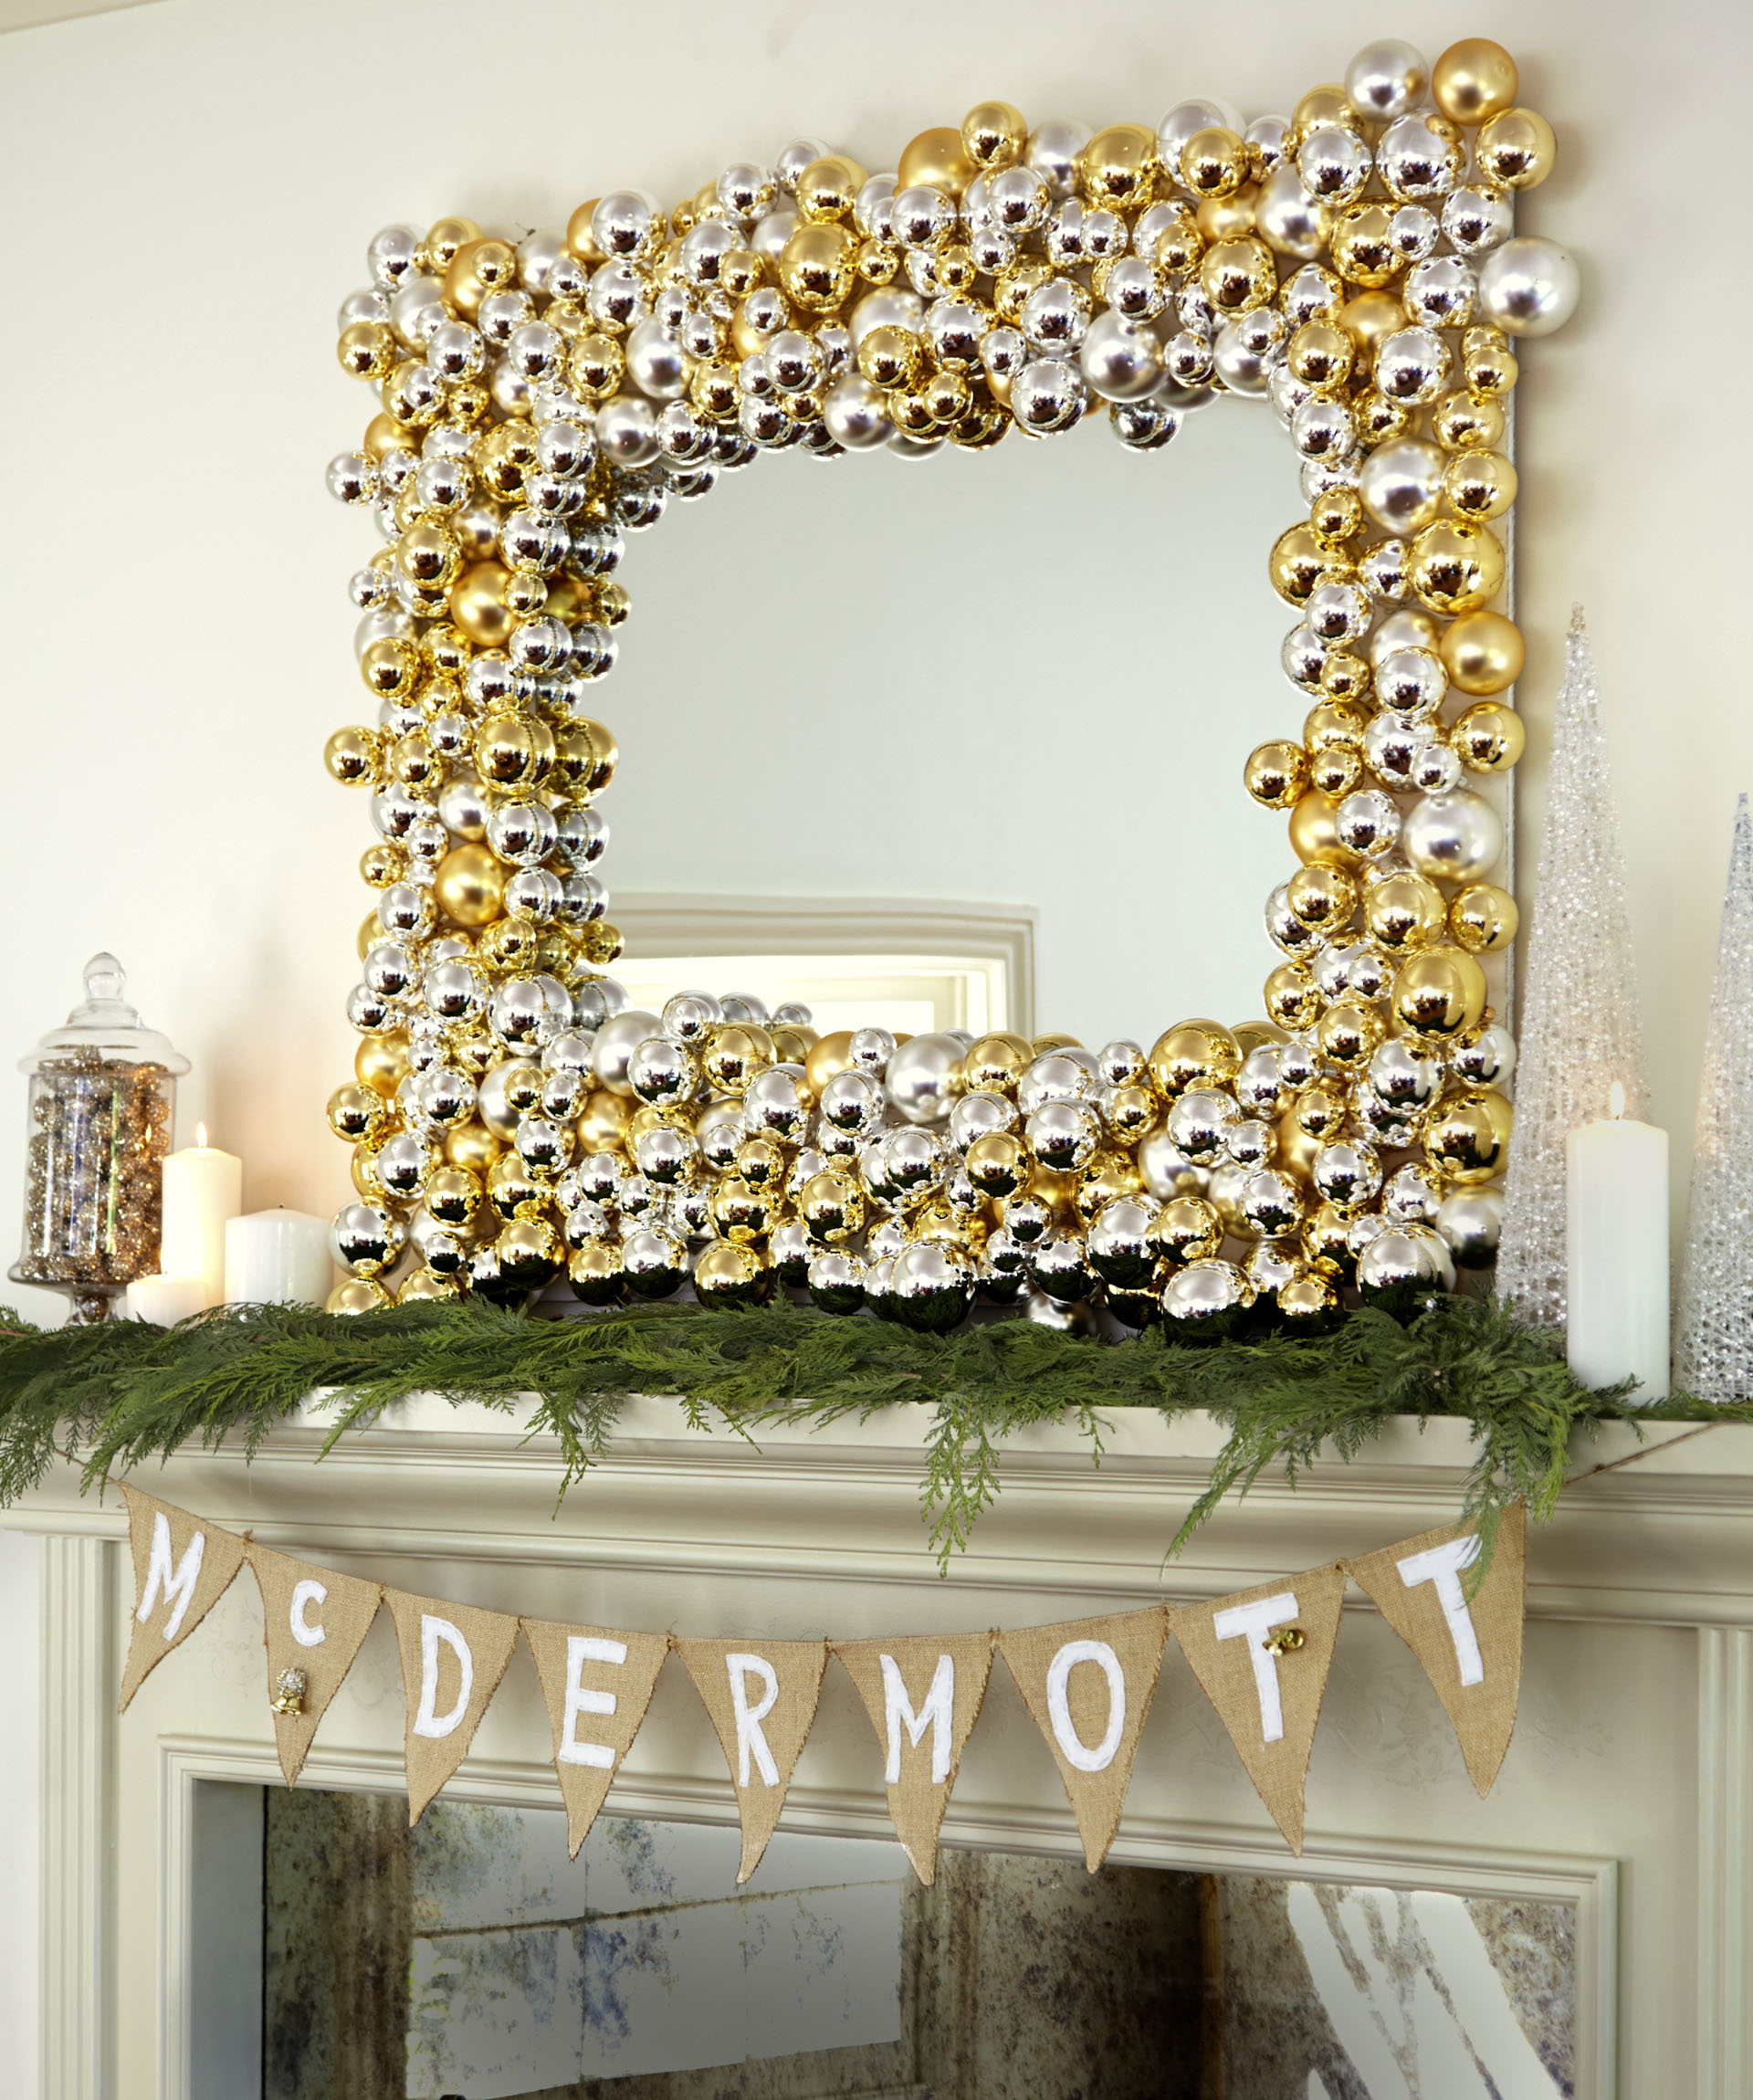 Diy holiday decor ideas from tori spelling easy diy for Design a christmas decoration